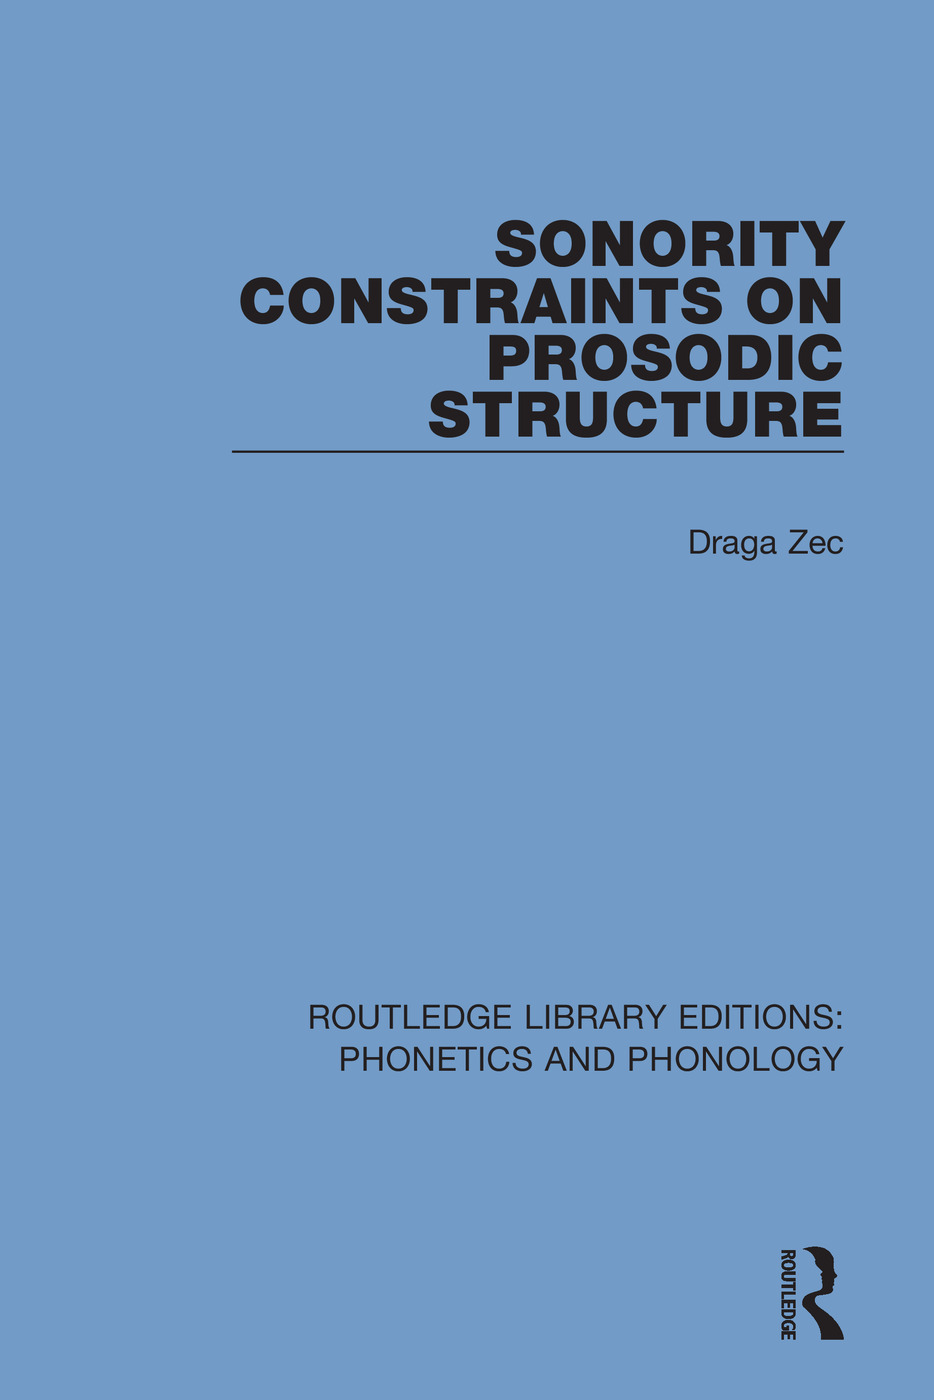 Sonority Constraints on Prosodic Structure